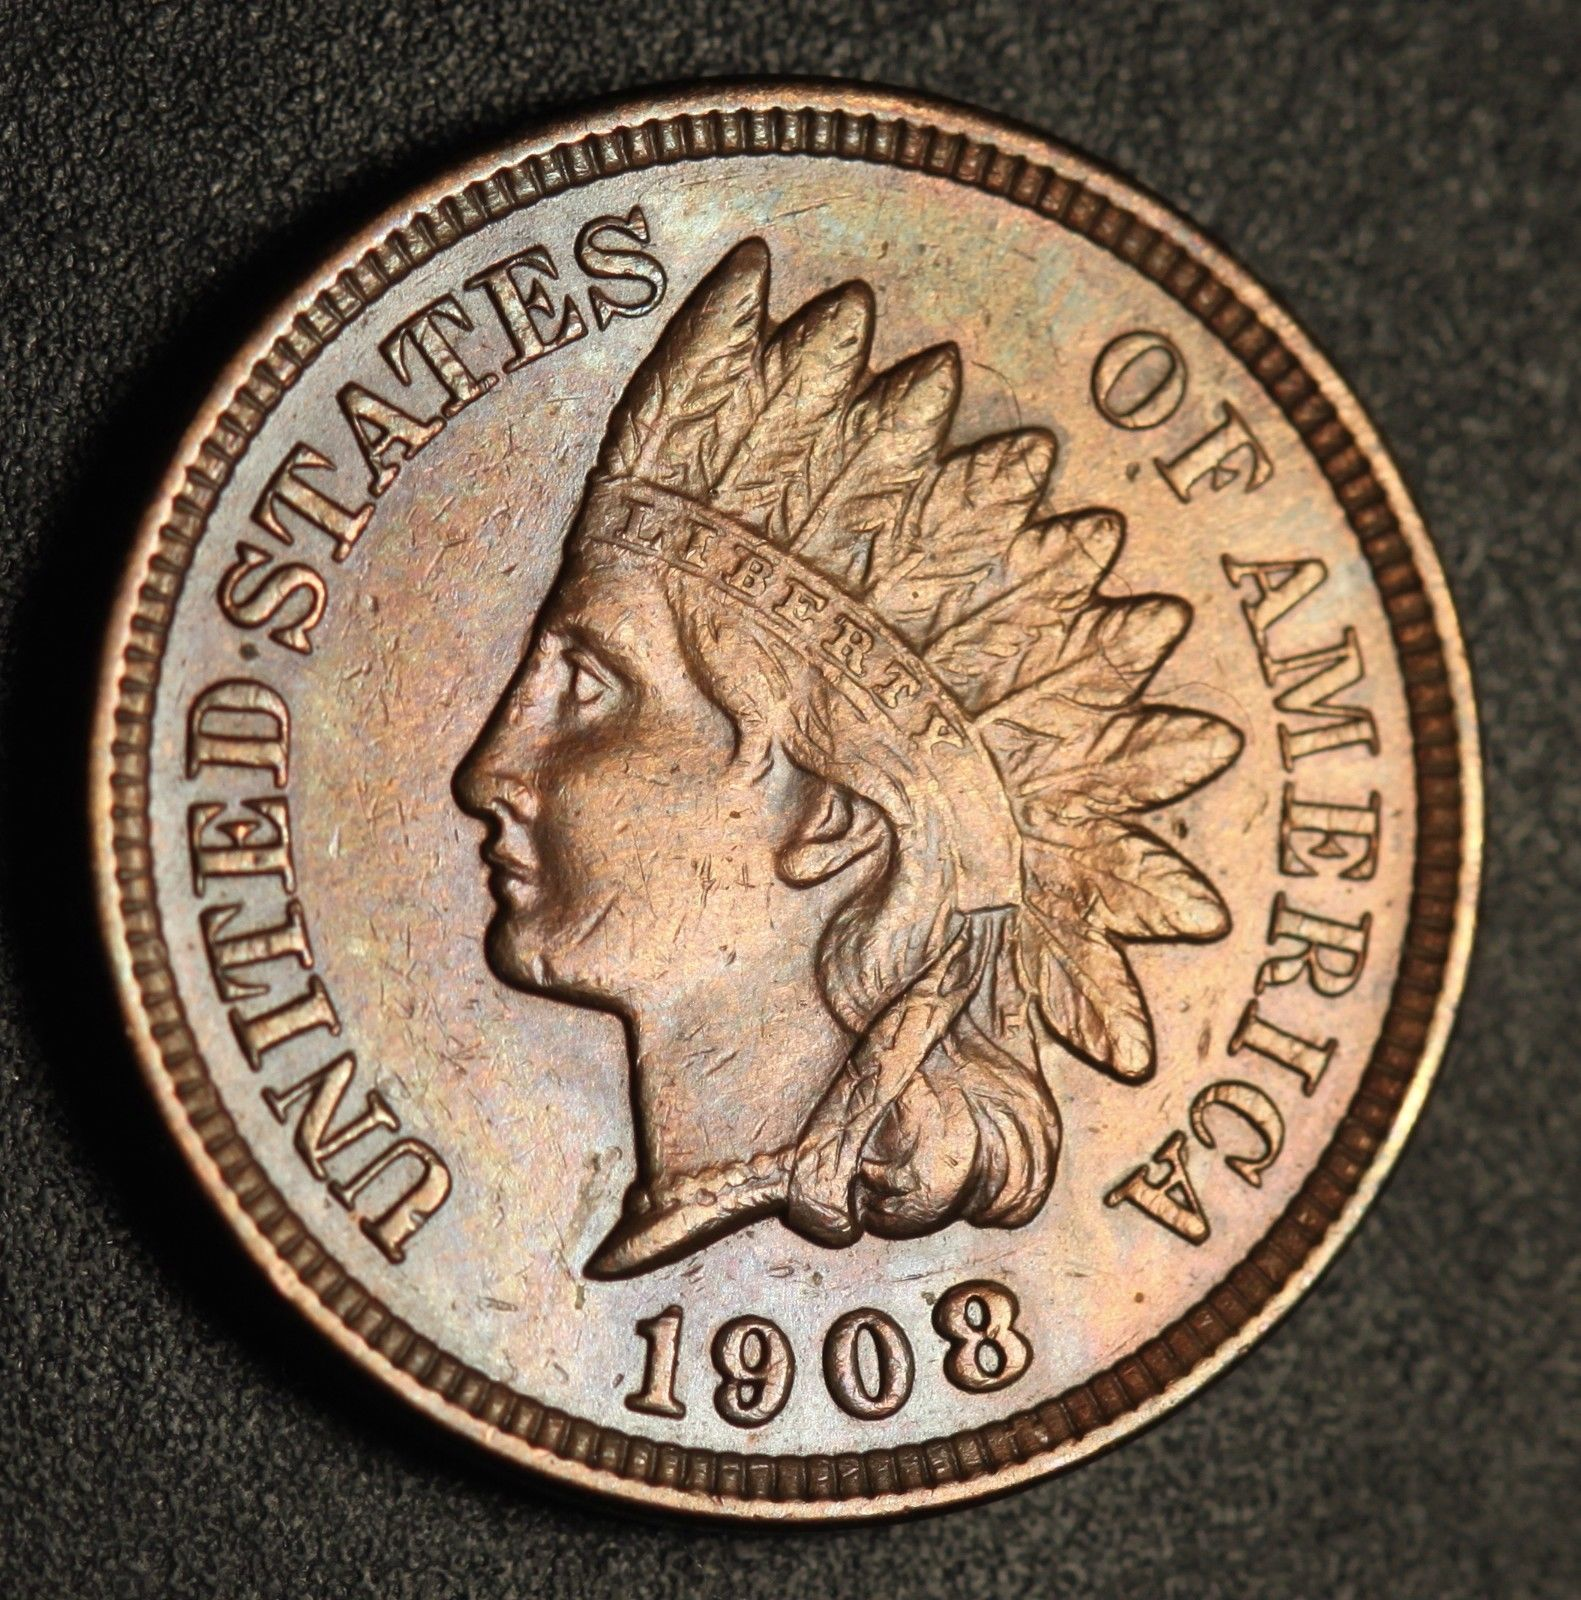 1908 MPD-006 - Indian Head Penny - Photo by Ed Nathanson